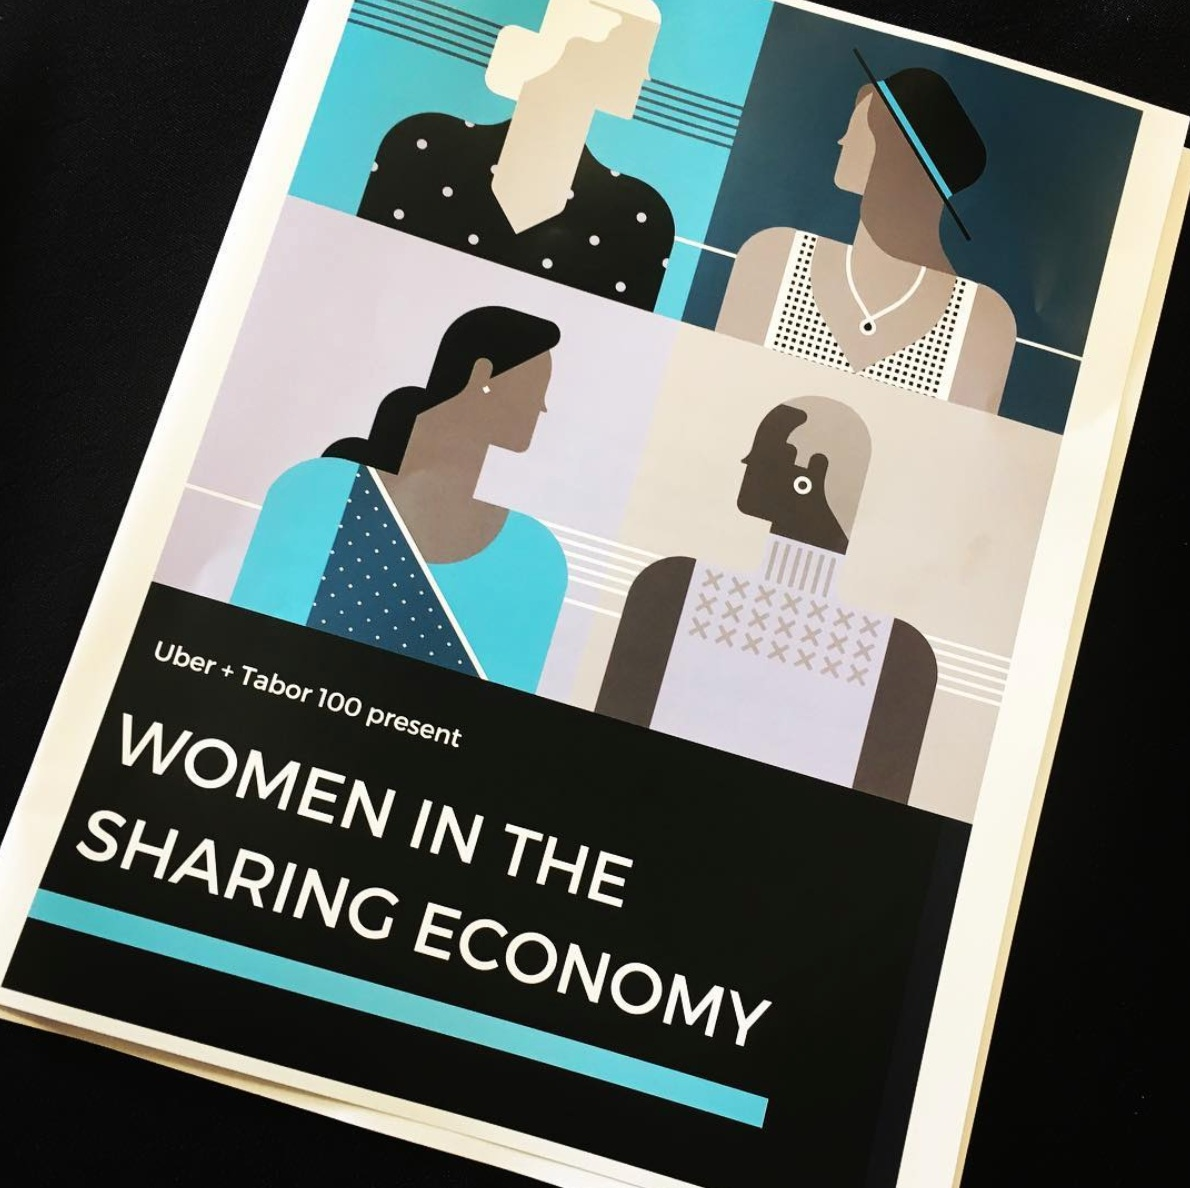 Women in the Sharing Economy